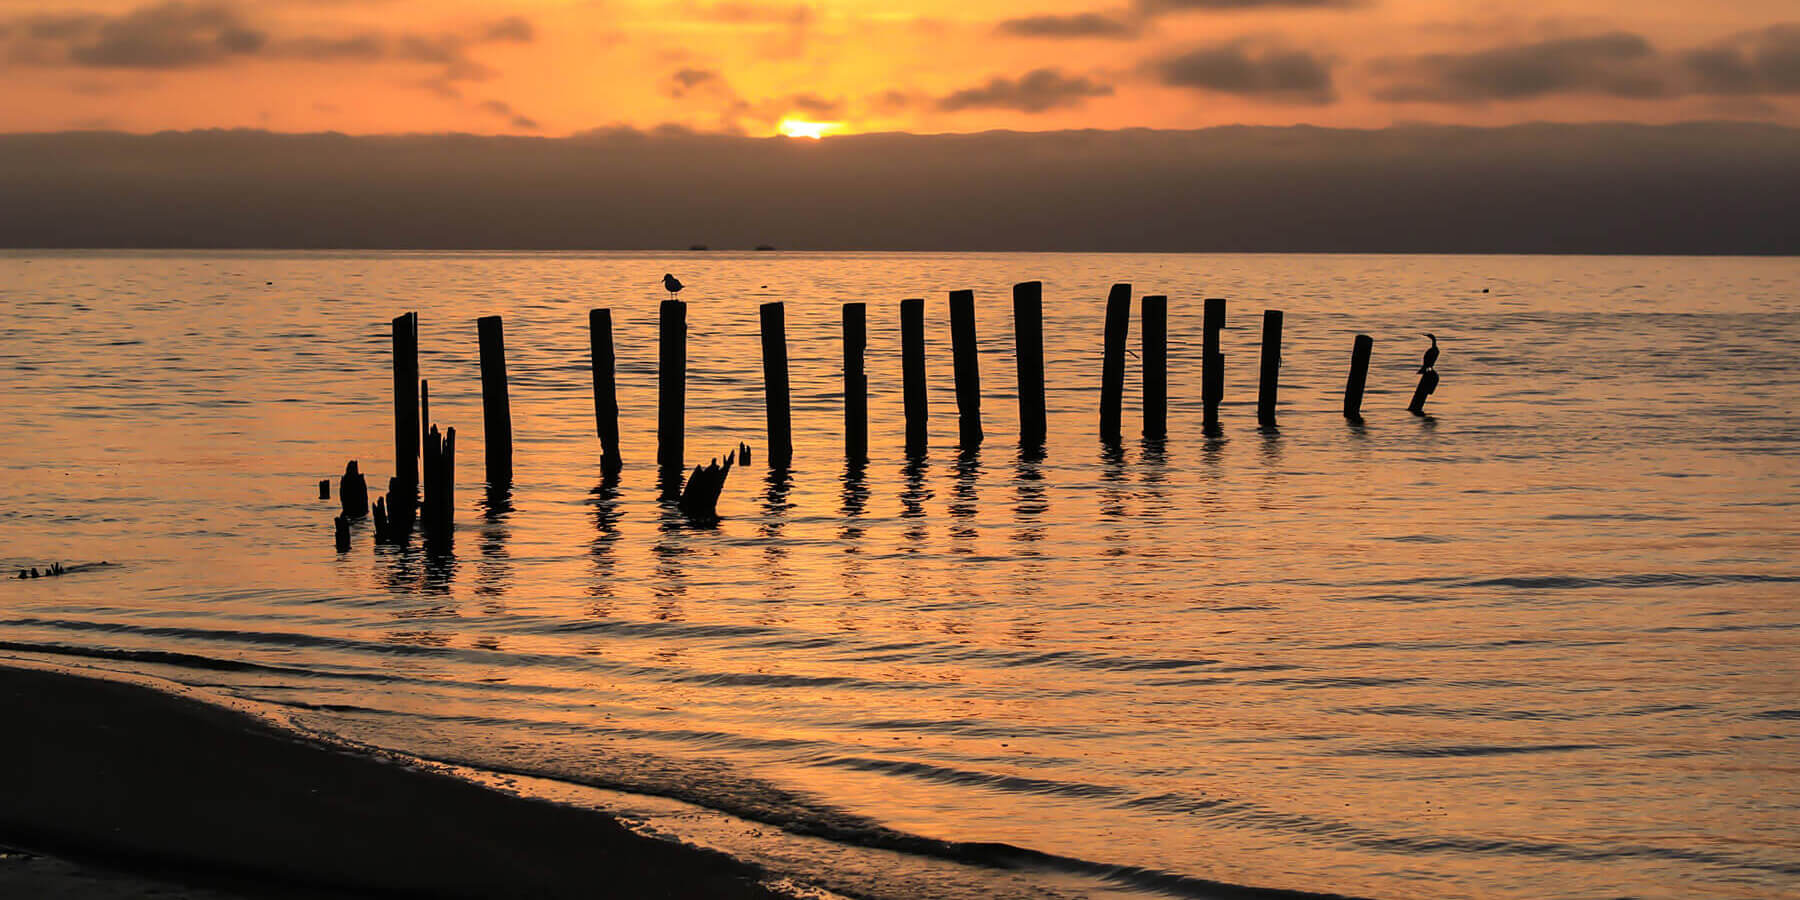 Picture of pilings in the water at sunset